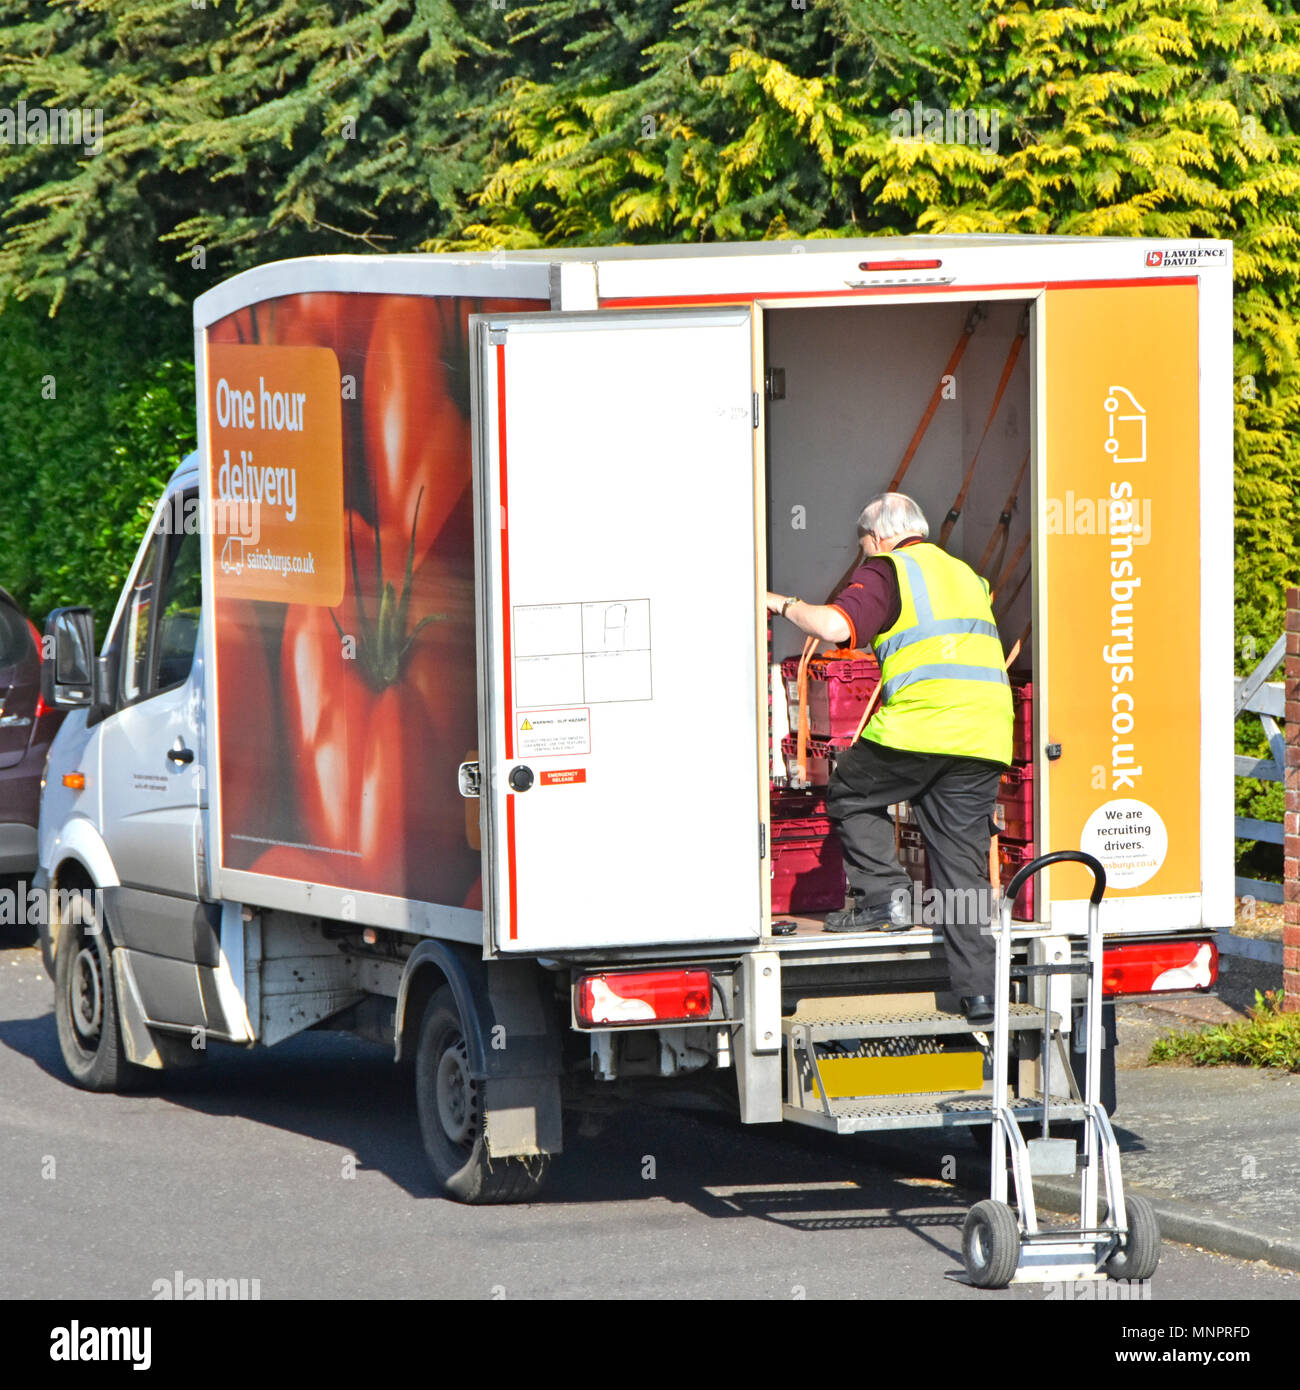 Since the ending of Royal Mail's monopoly on parcel delivery, numerous courier companies and delivery brokers have moved into the market and competition is fierce. These cheap services are.